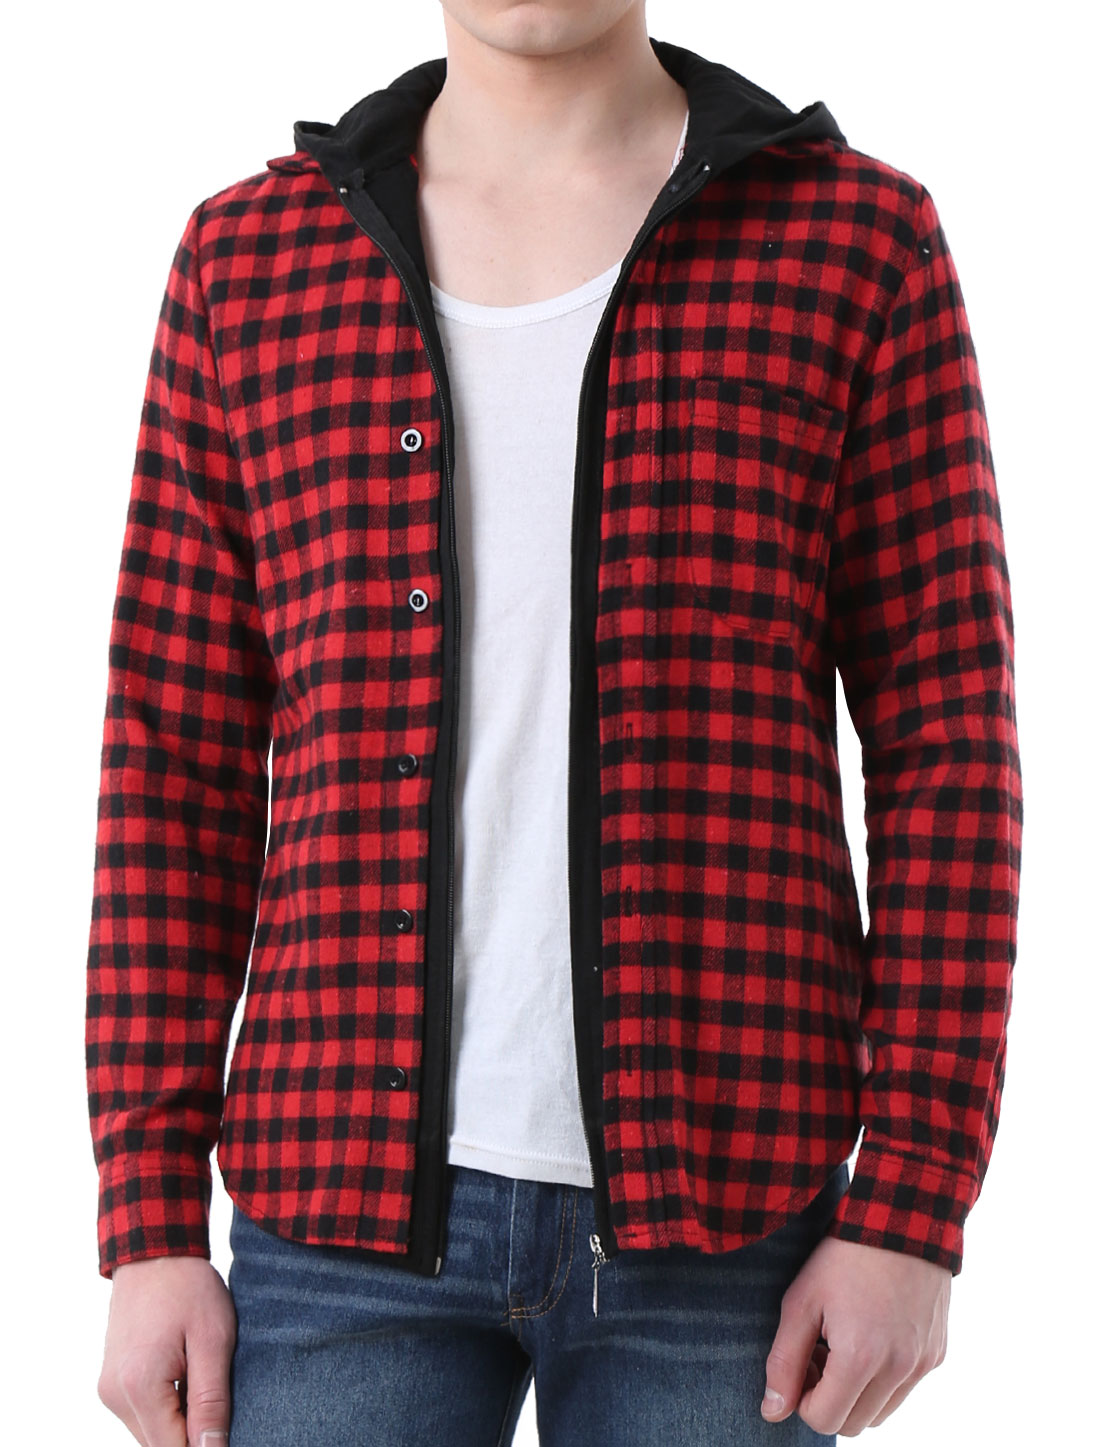 Men Casual Stylish Contrast Color Check Pattern Hooded Shirt Black Red S